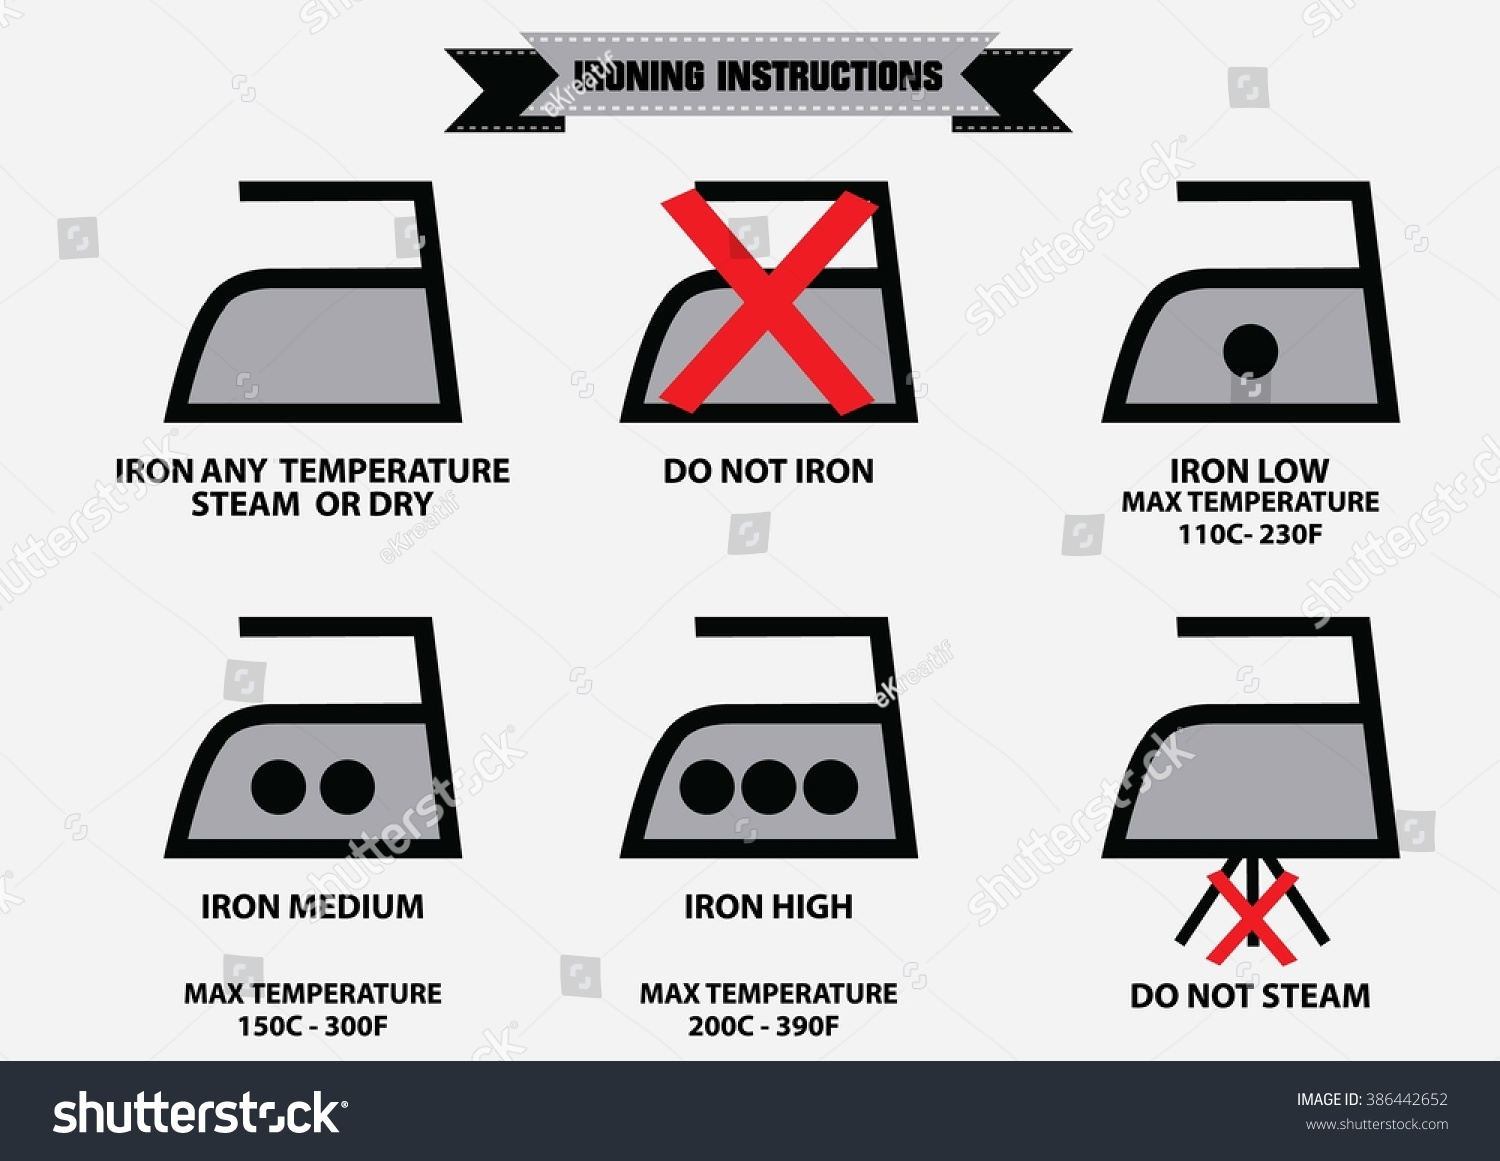 Hot Iron Symbol Images Meaning Of Text Symbols